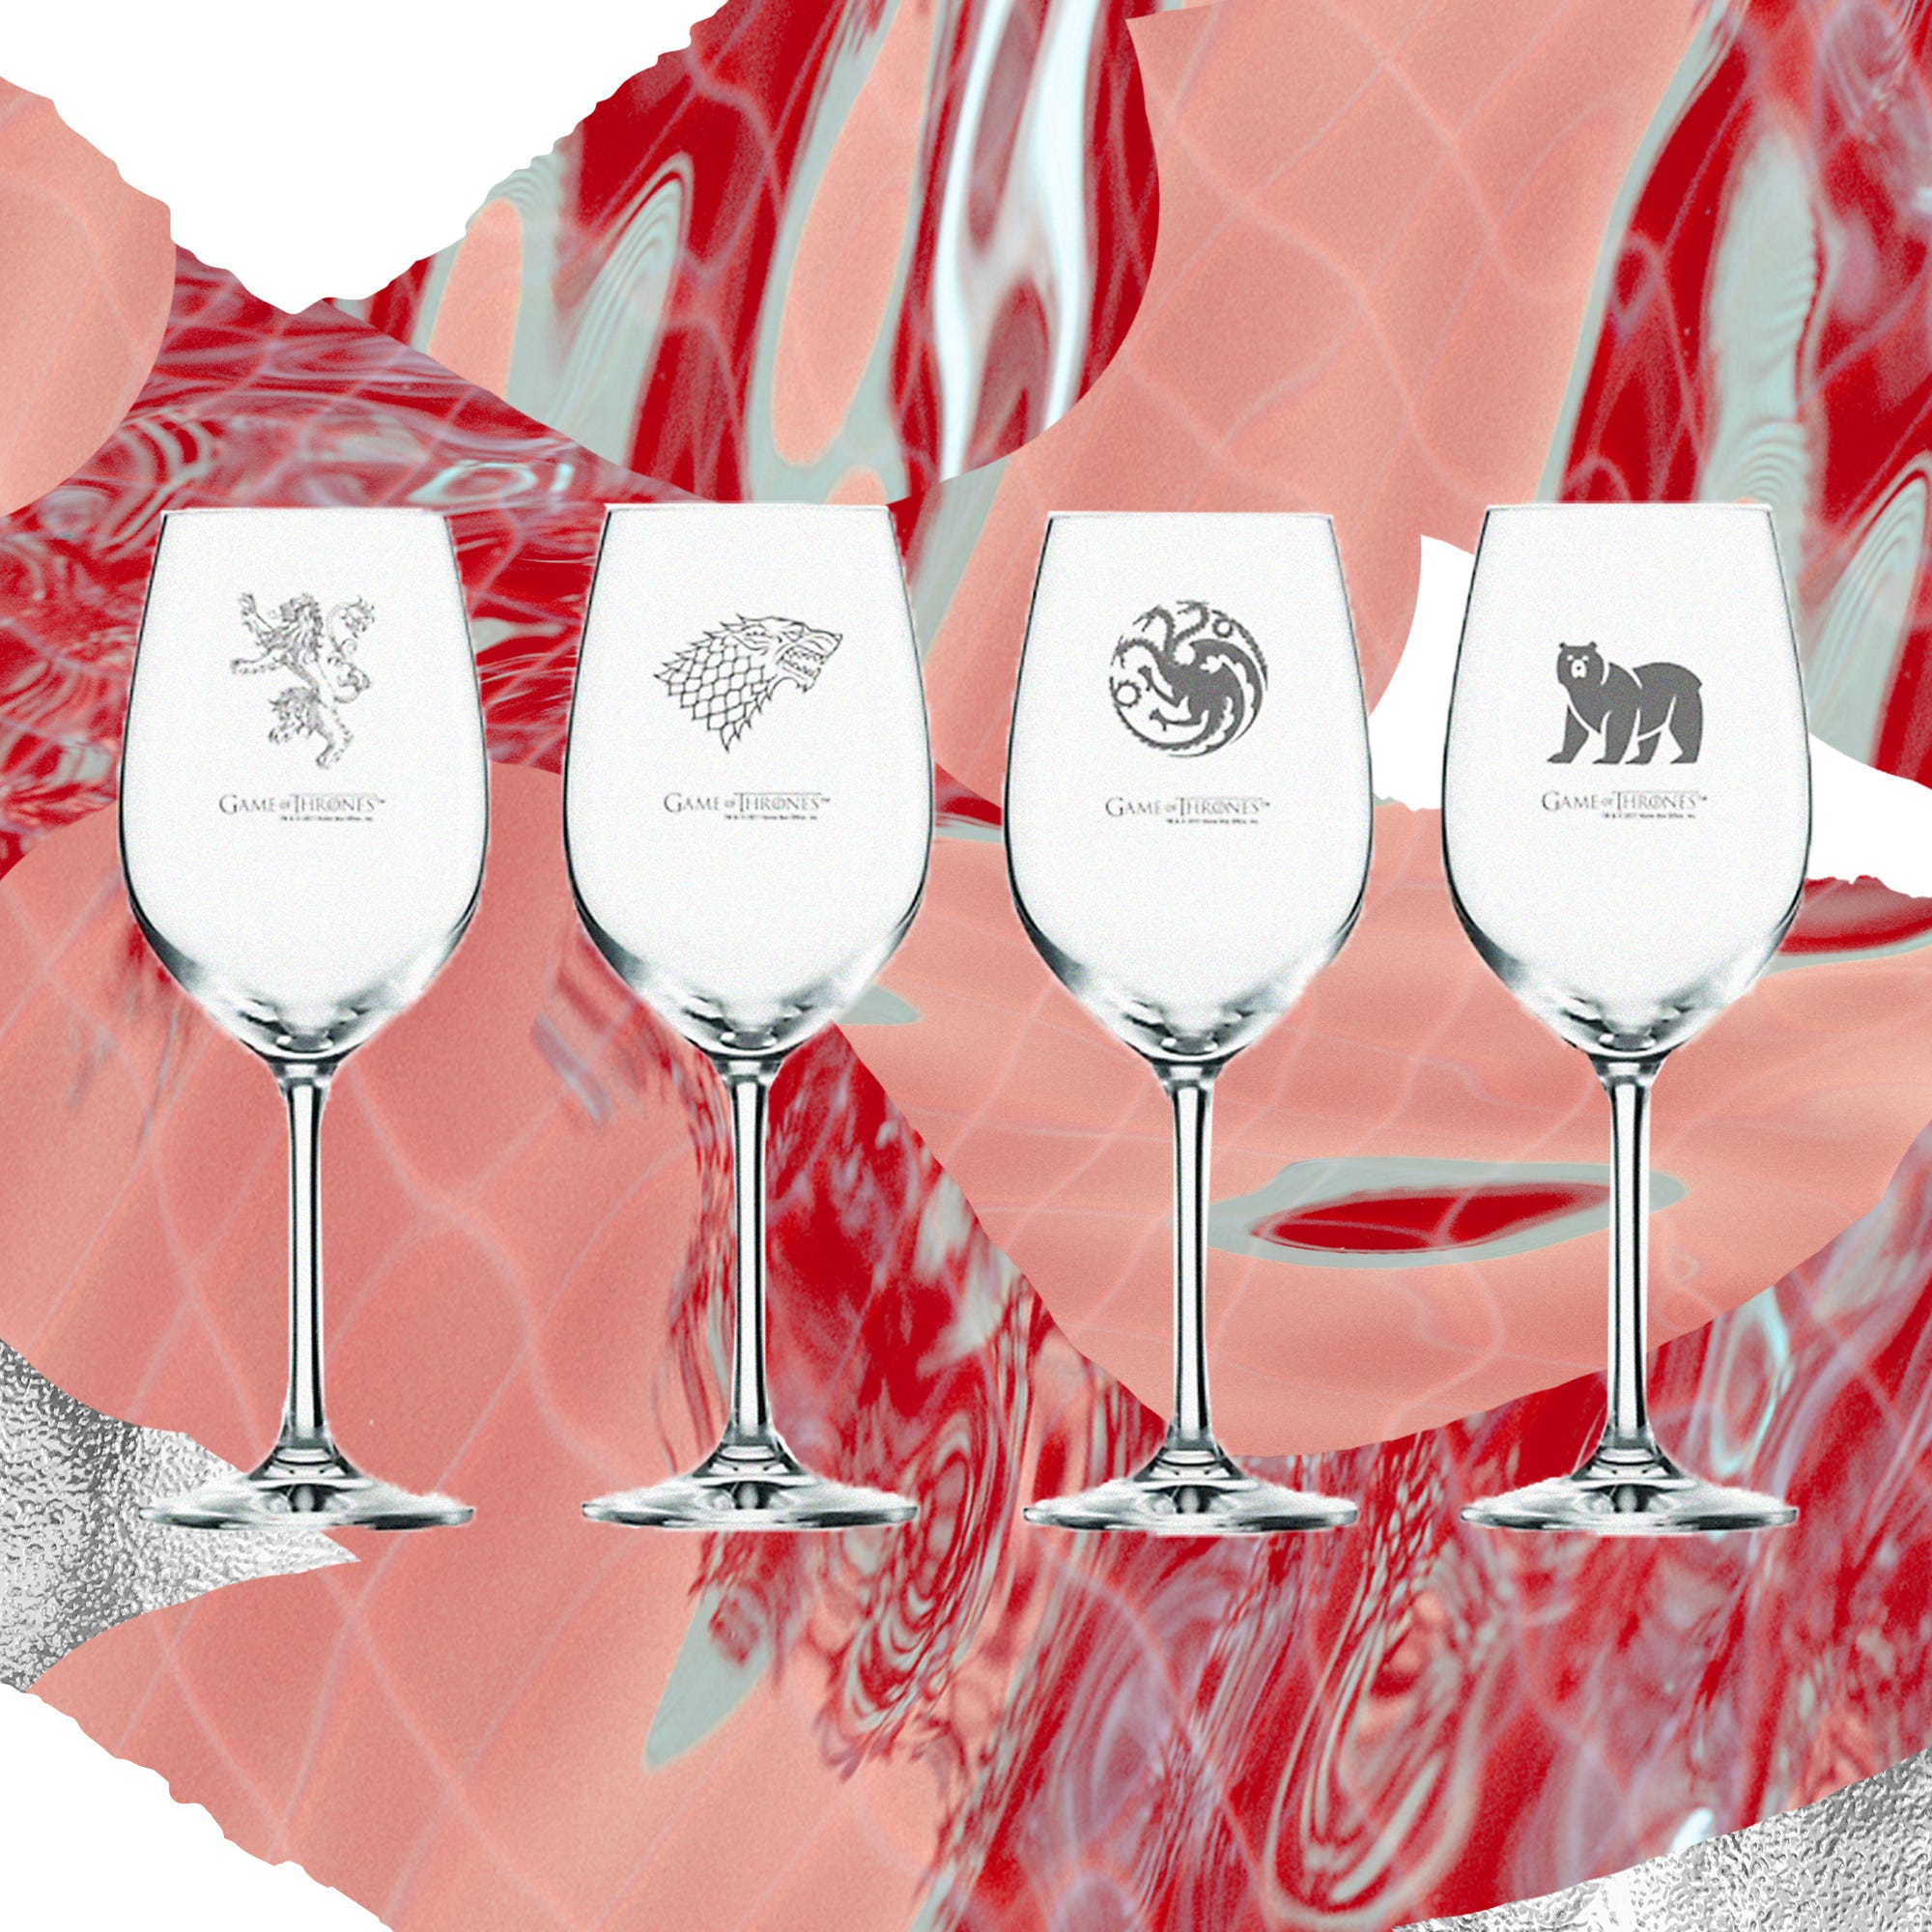 Game Of Thrones Official Beer And Wine Glasses